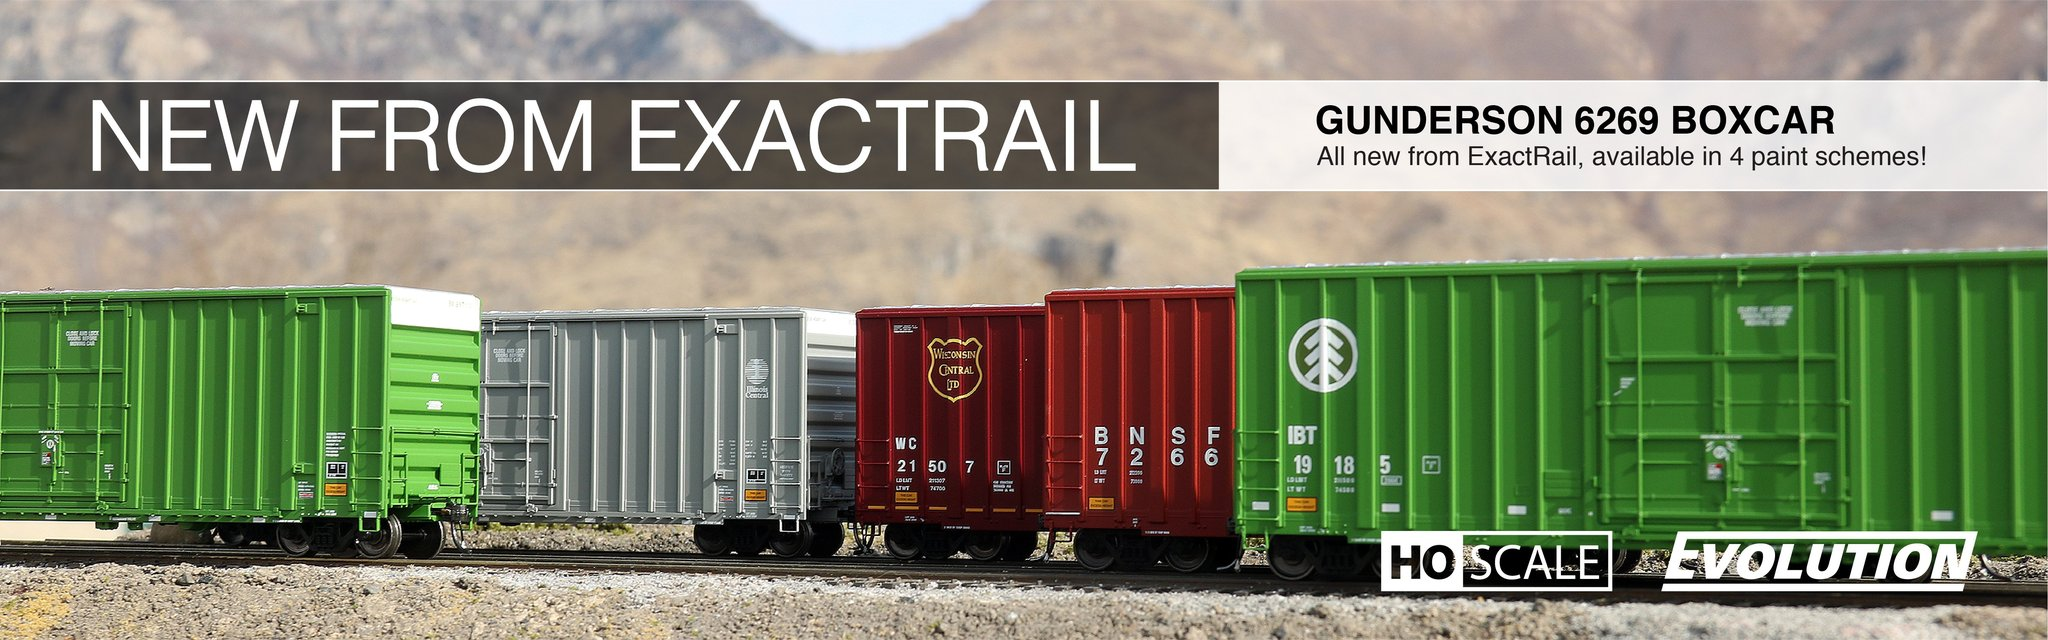 exactrail.com pc&f 6033 boxcar announcement page